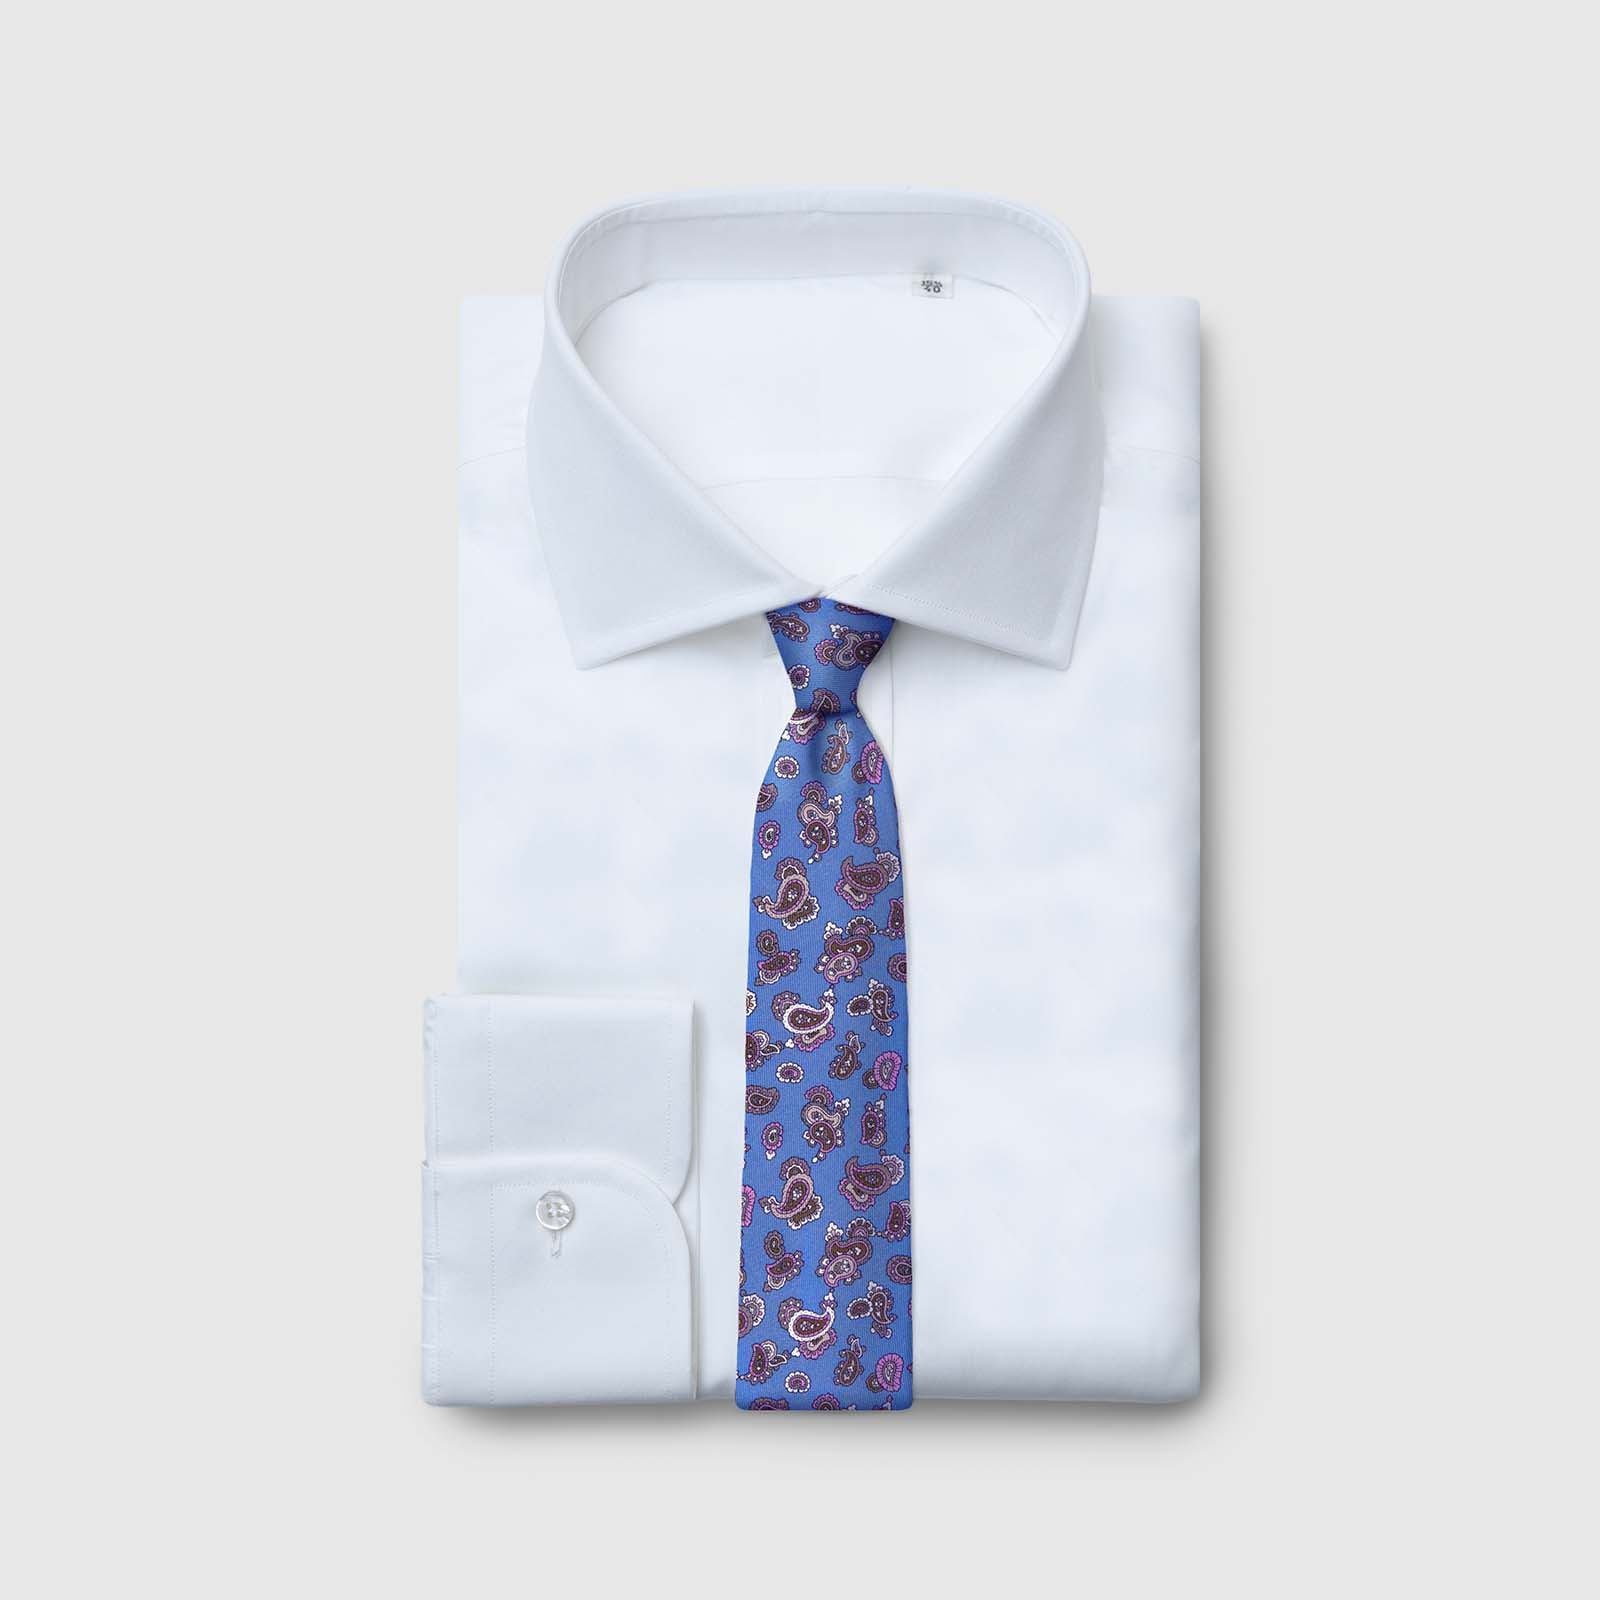 5 Fold azure tie with patterns